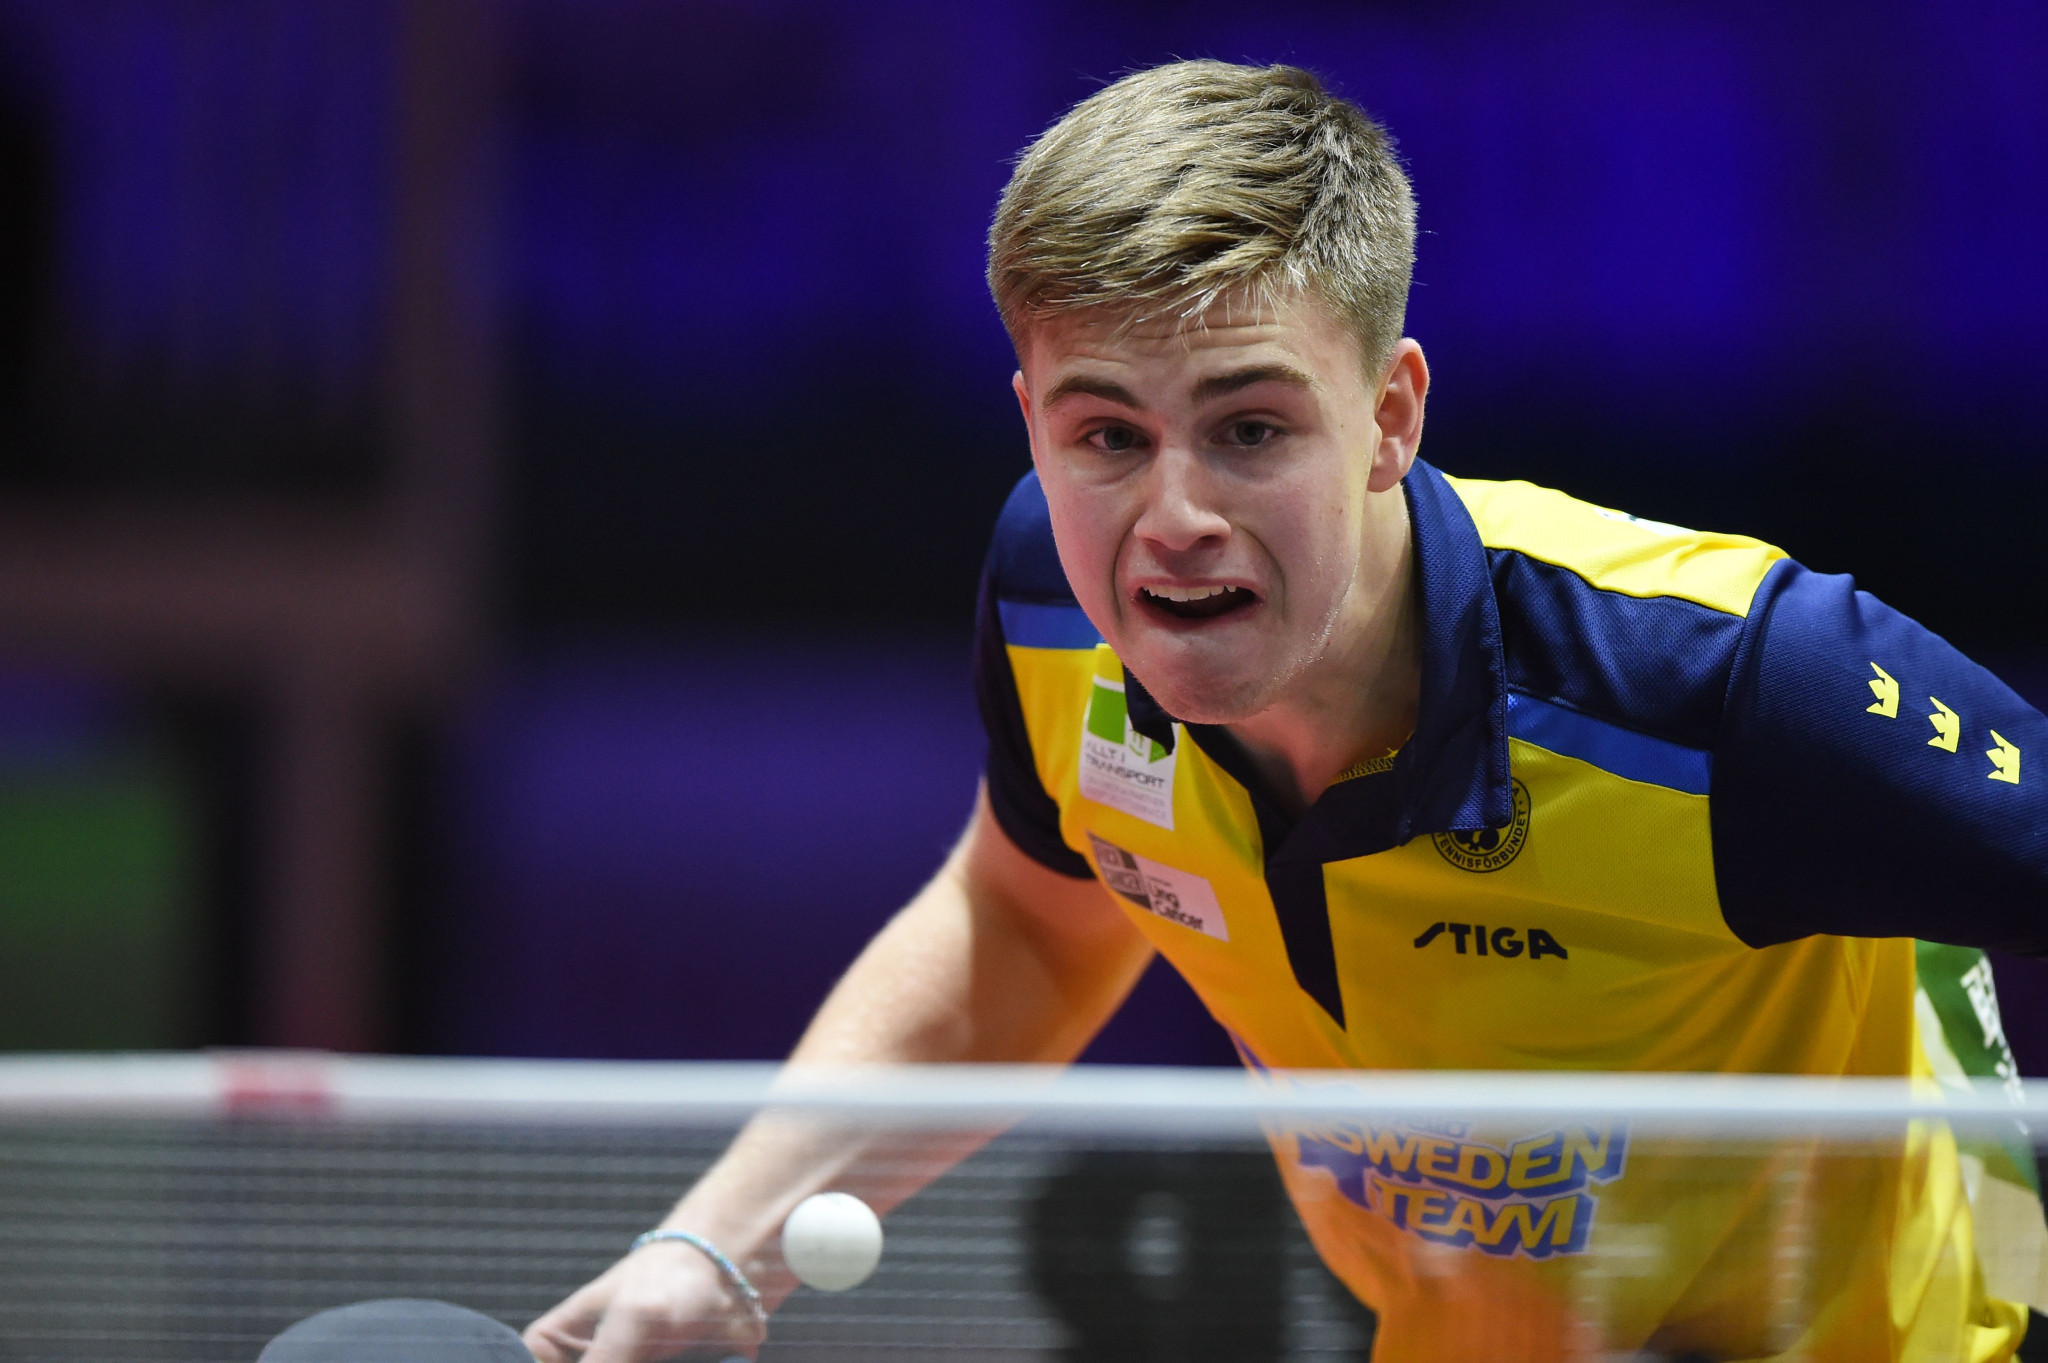 Sweden's Truls Moregard, pictured, will play Germany's Kilian Ort in the men's singles final, with both players upsetting the top two seeds Quadri Aruna and Liam Pitchford respectively on route ©Getty Images